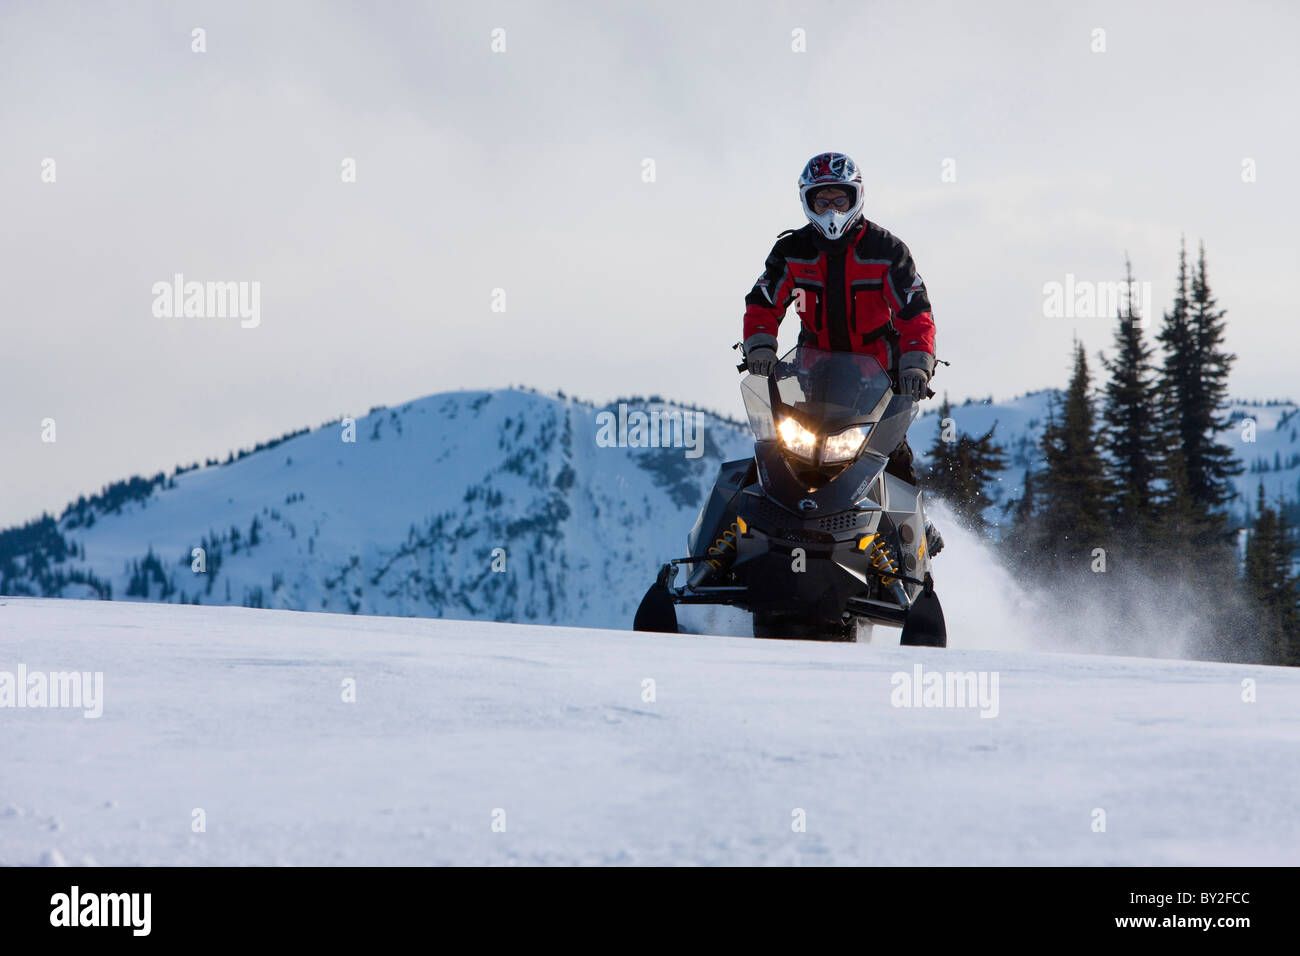 A man rides a snowmobile in a standing position through the snow on Owlshead Mountain. - Stock Image